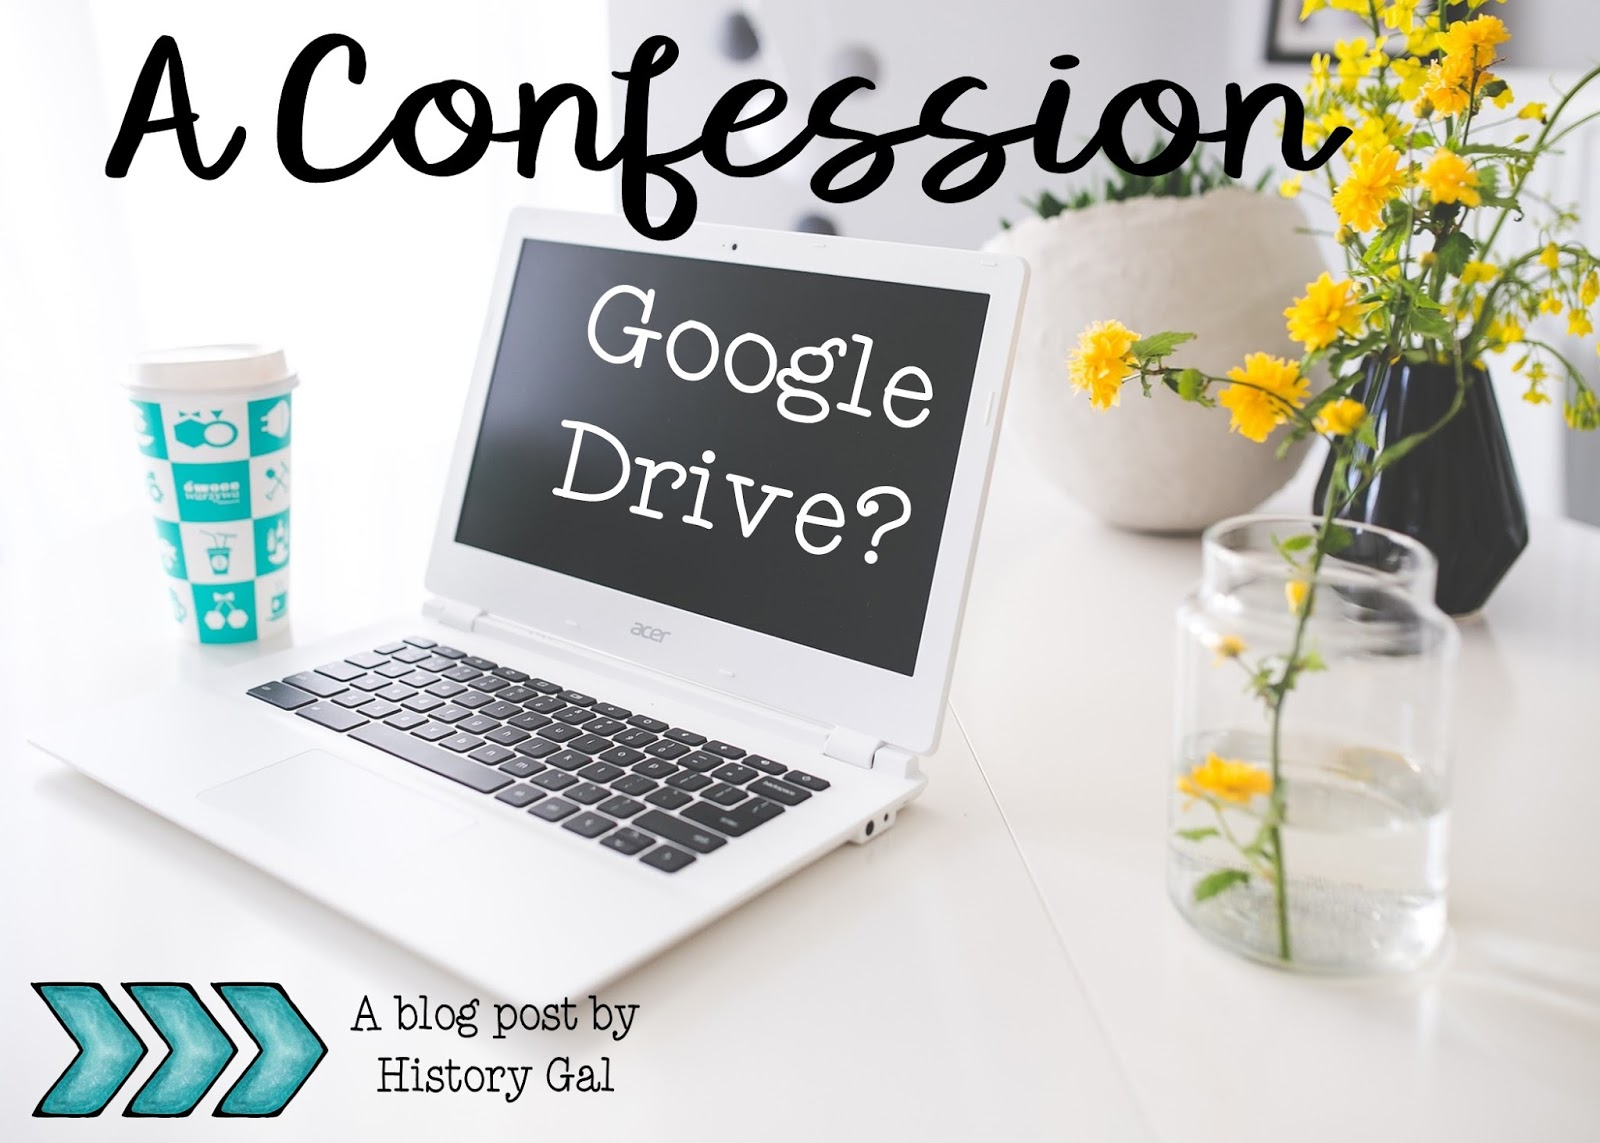 What is Google Drive? by History Gal